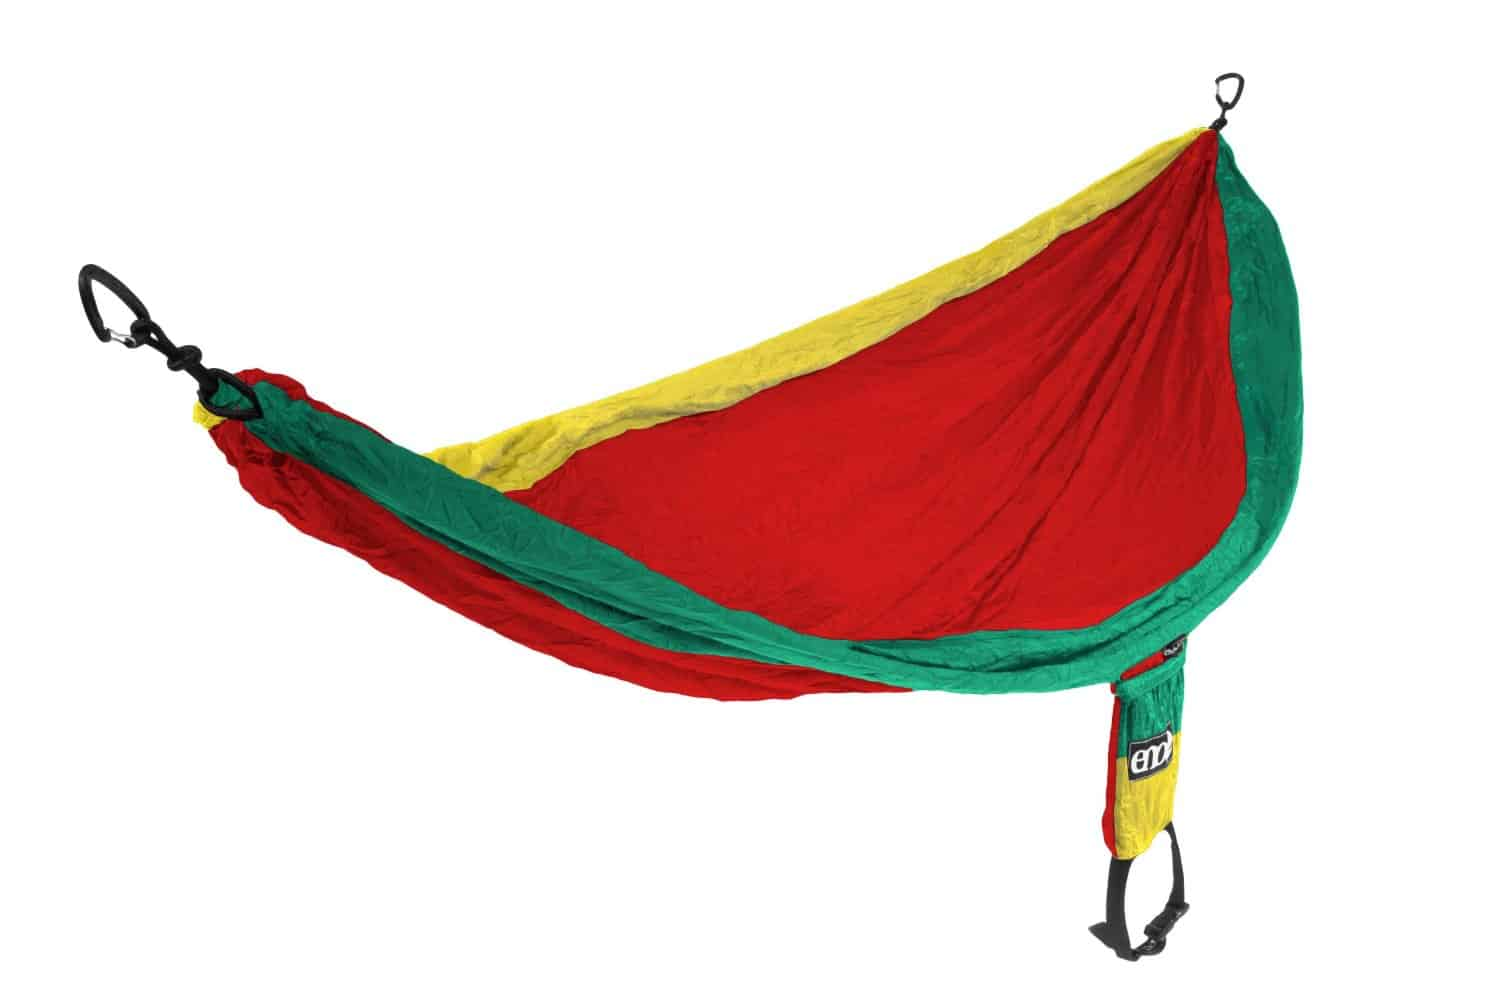 Fox Outfitters Neolite Trek Camping Hammock Vs. ENO Backpacking Hammock